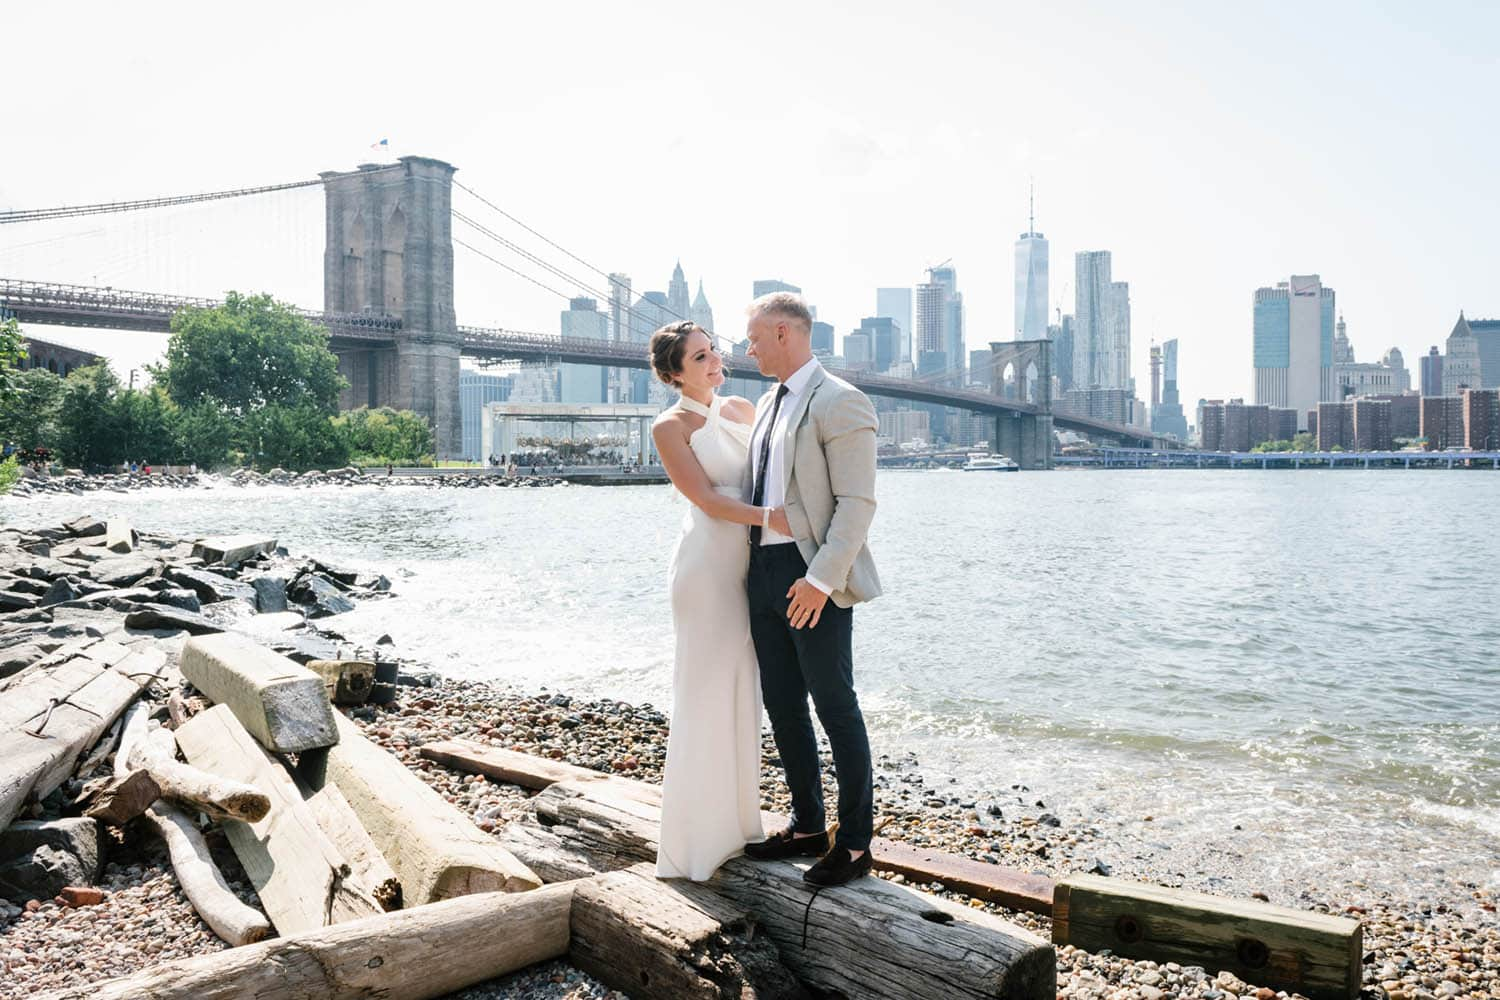 best time to take outdoor wedding photos: late afternoon